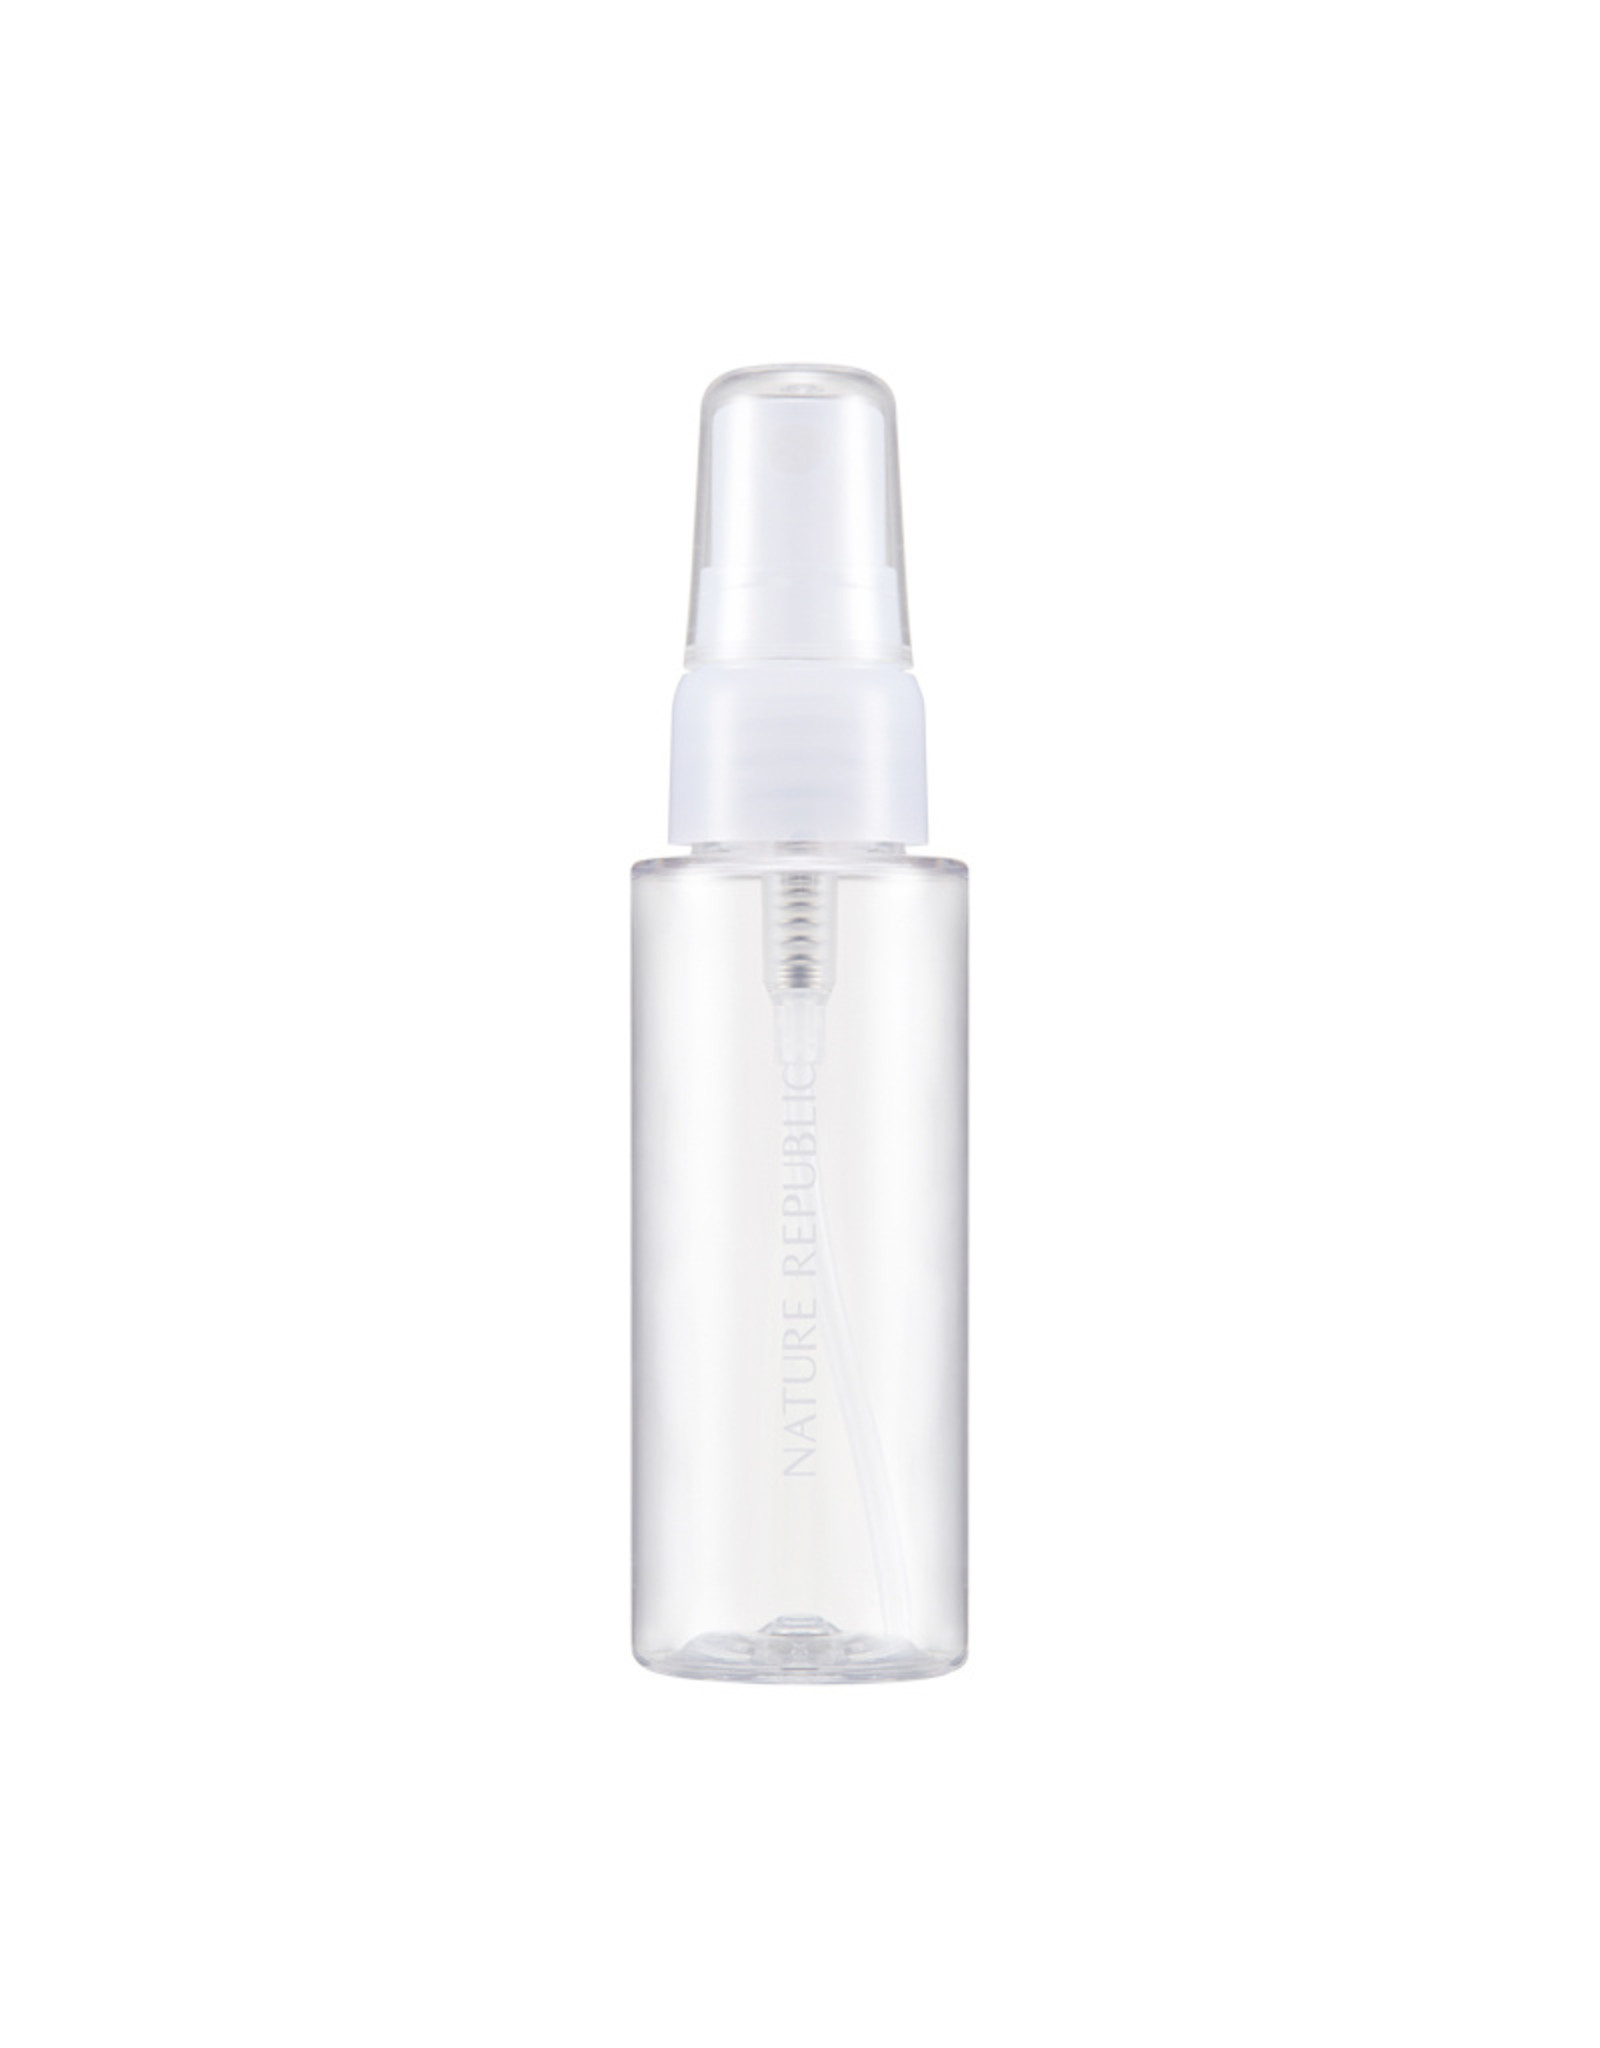 Beauty Tool Spray Type Container